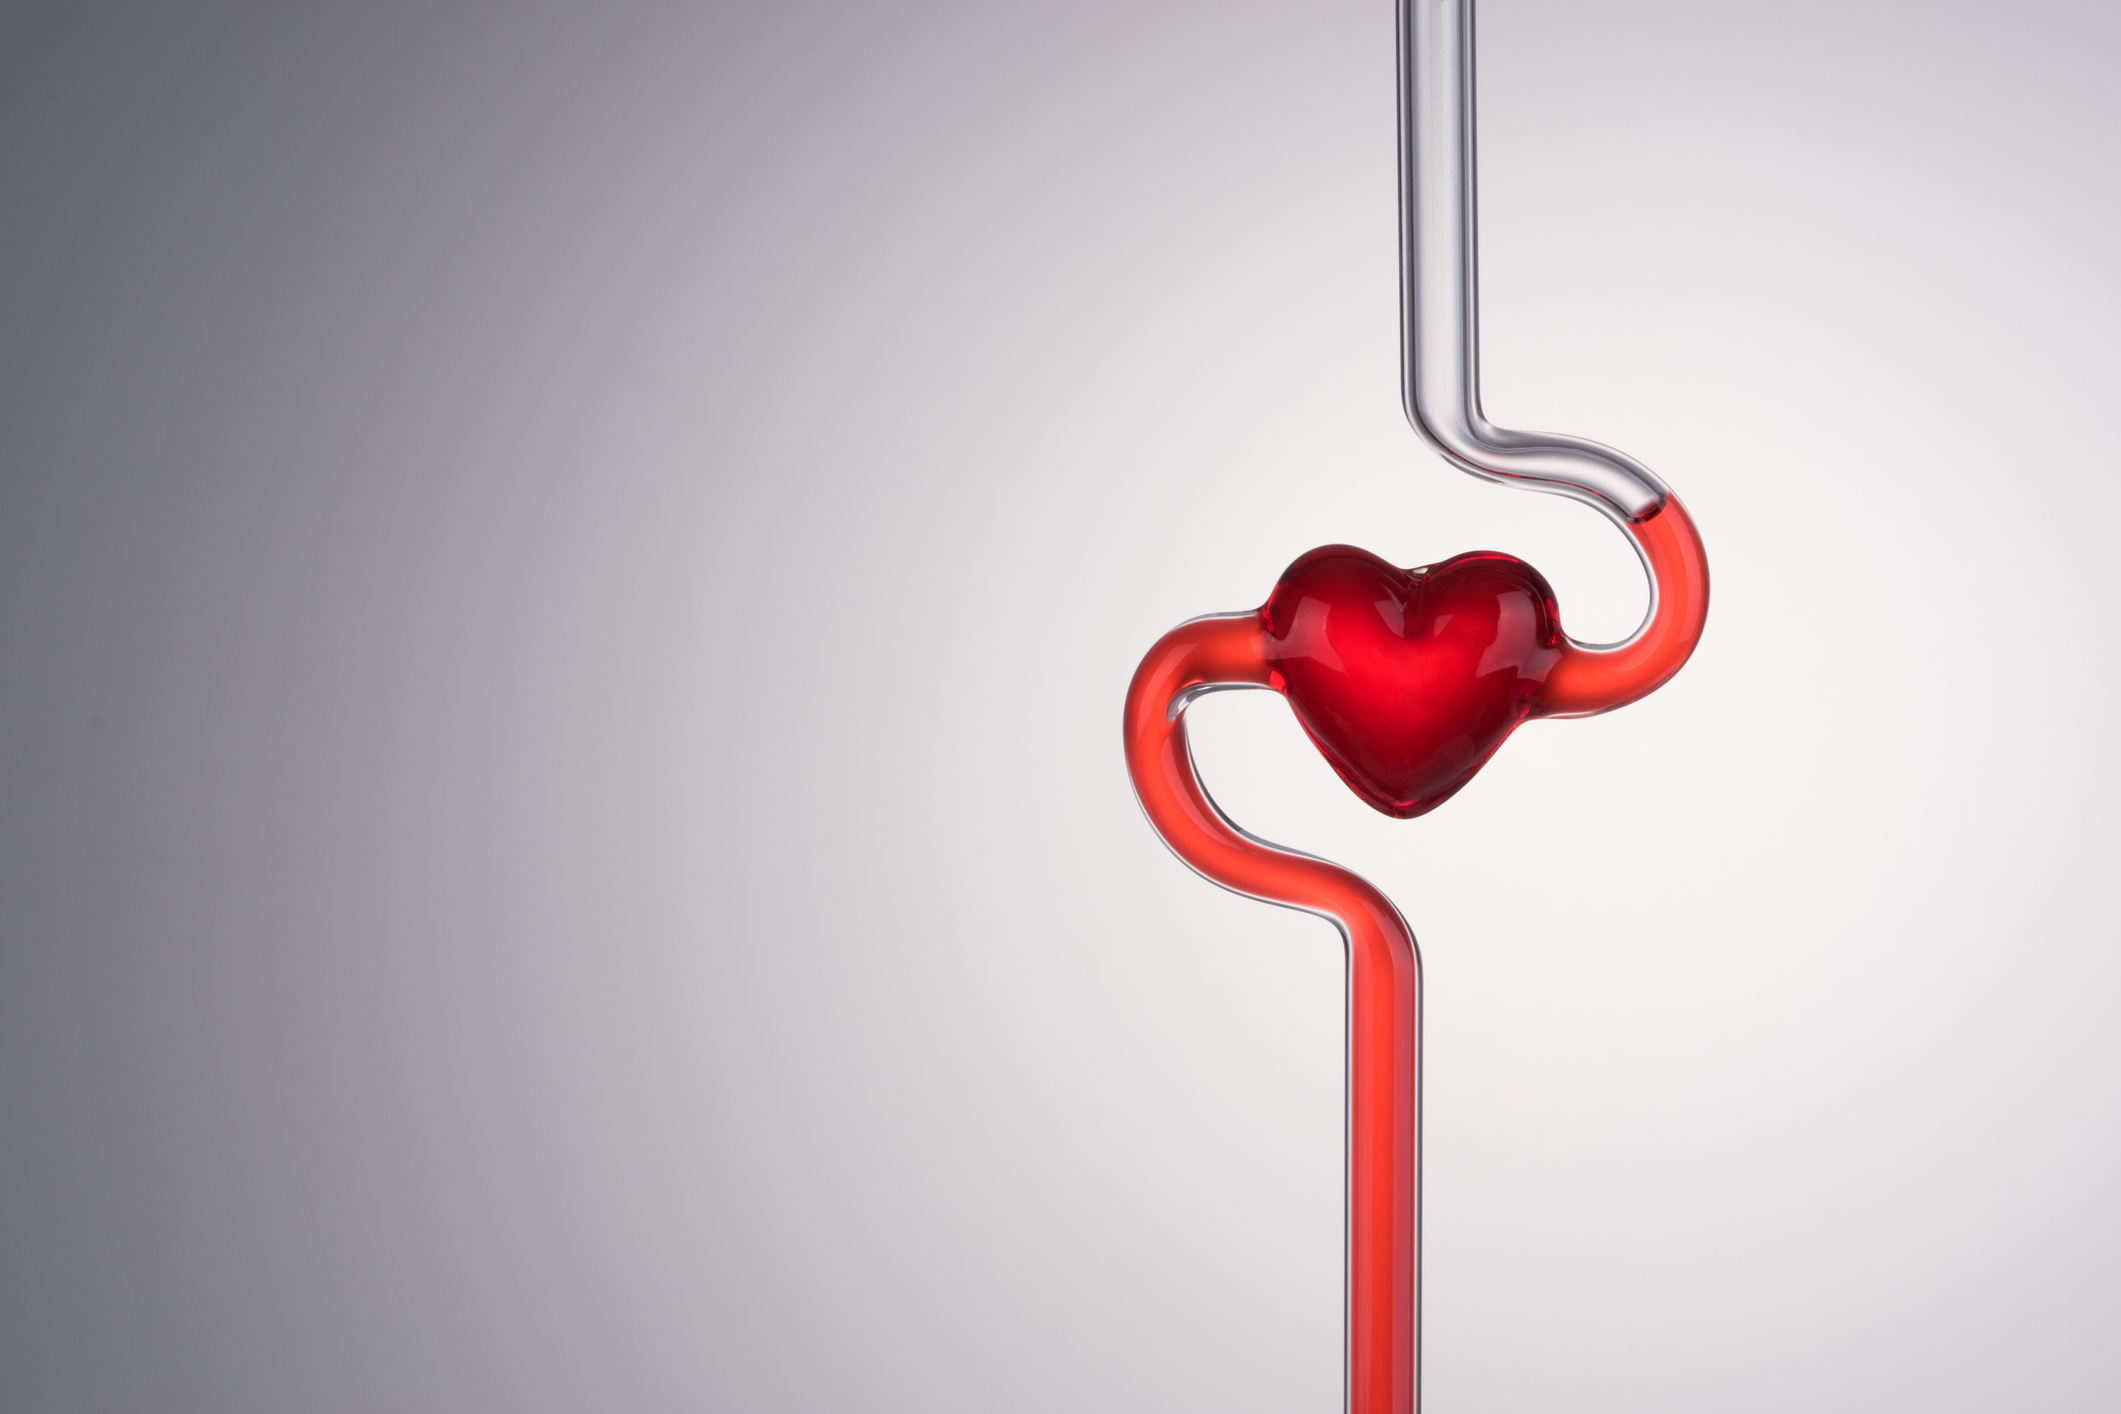 Blood Vessel and Heart Abstract.